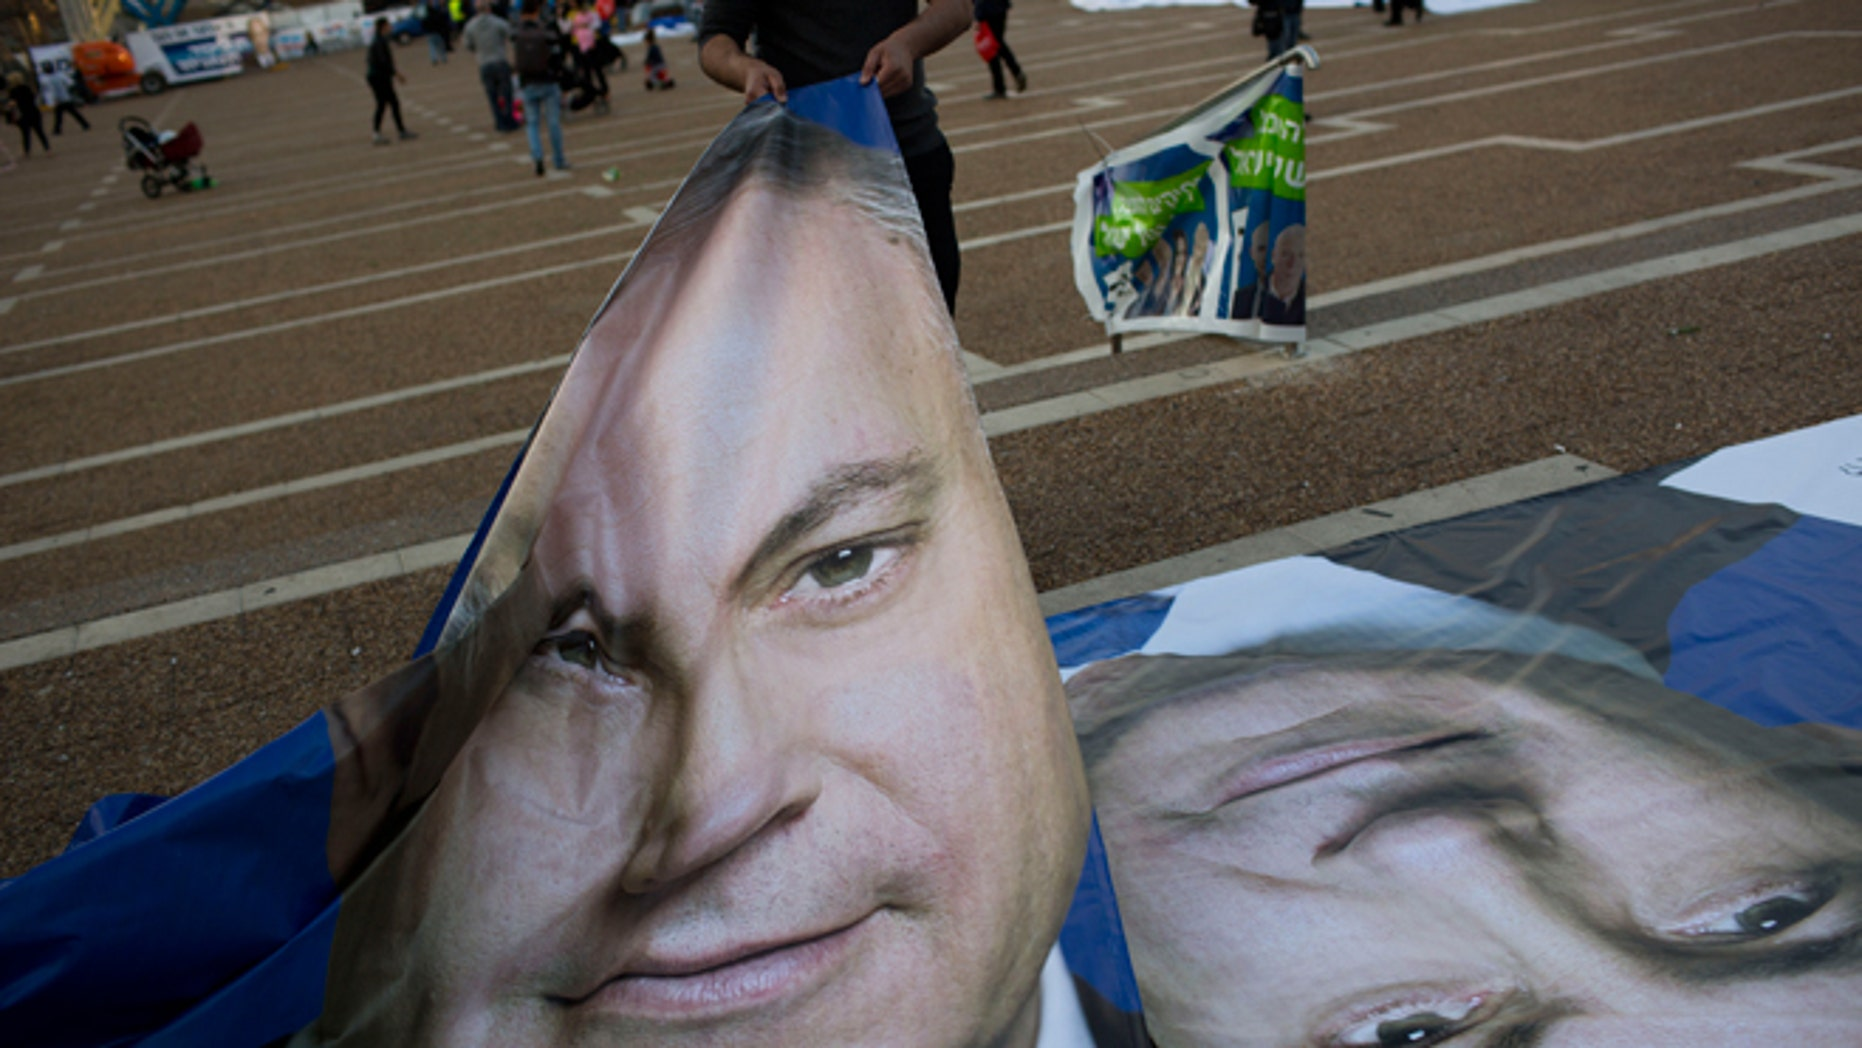 March 15, 2015: People bring posters of Israeli Prime Minister Benjamin Netanyahu prior to his election rally in Tel Aviv, Israel two days ahead of parliament elections. Netanyahu seeks his fourth term as prime minister.